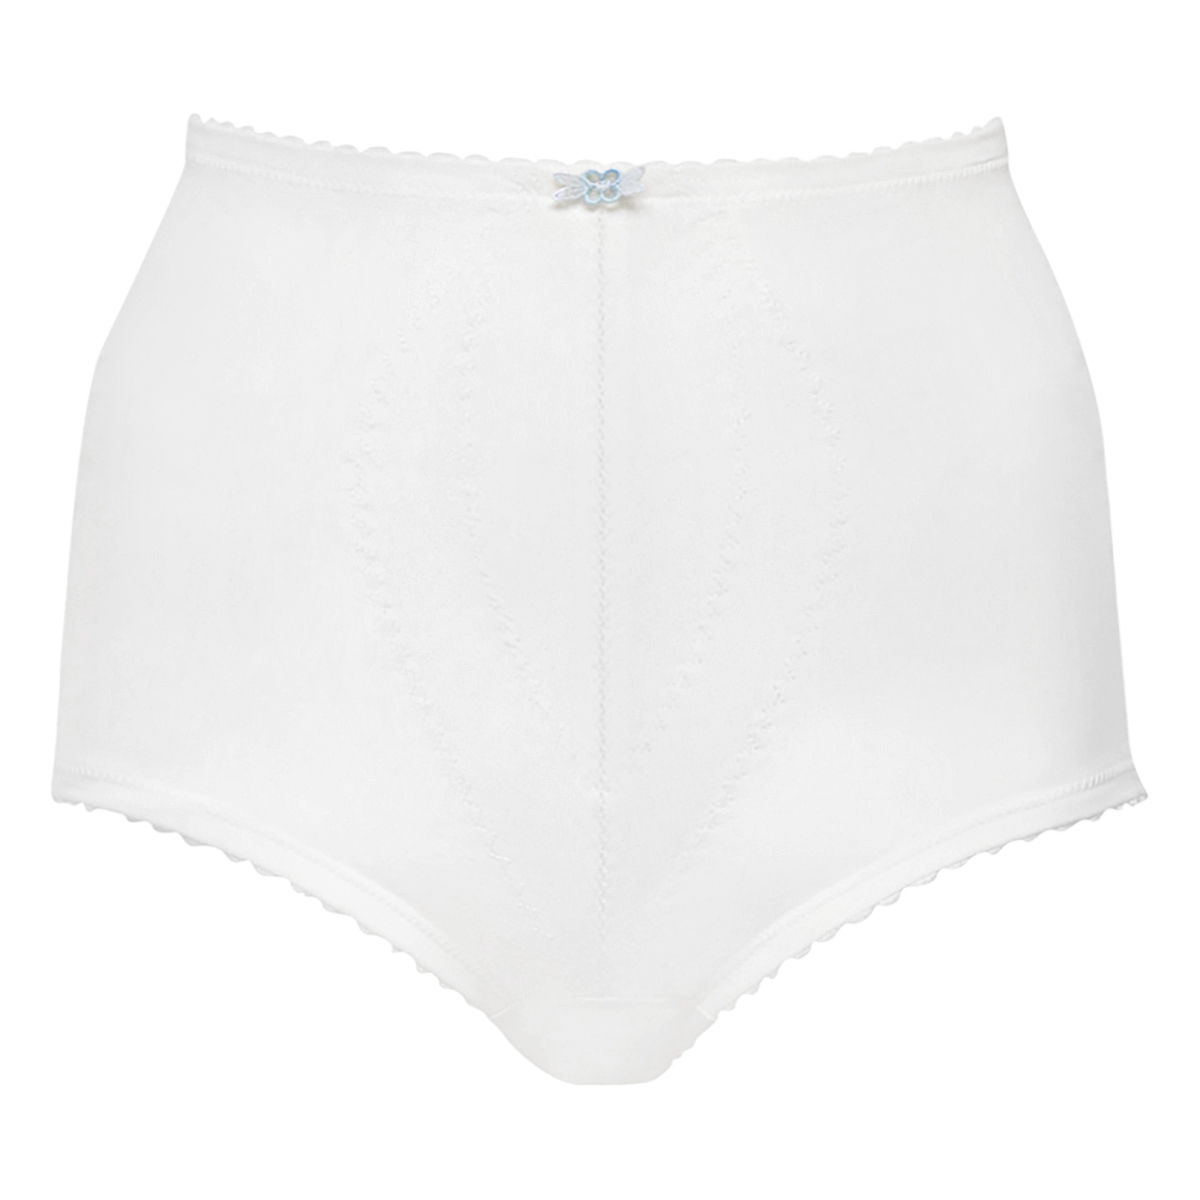 Culotte gainante serre-taille blanche  – ICUG, , PLAYTEX